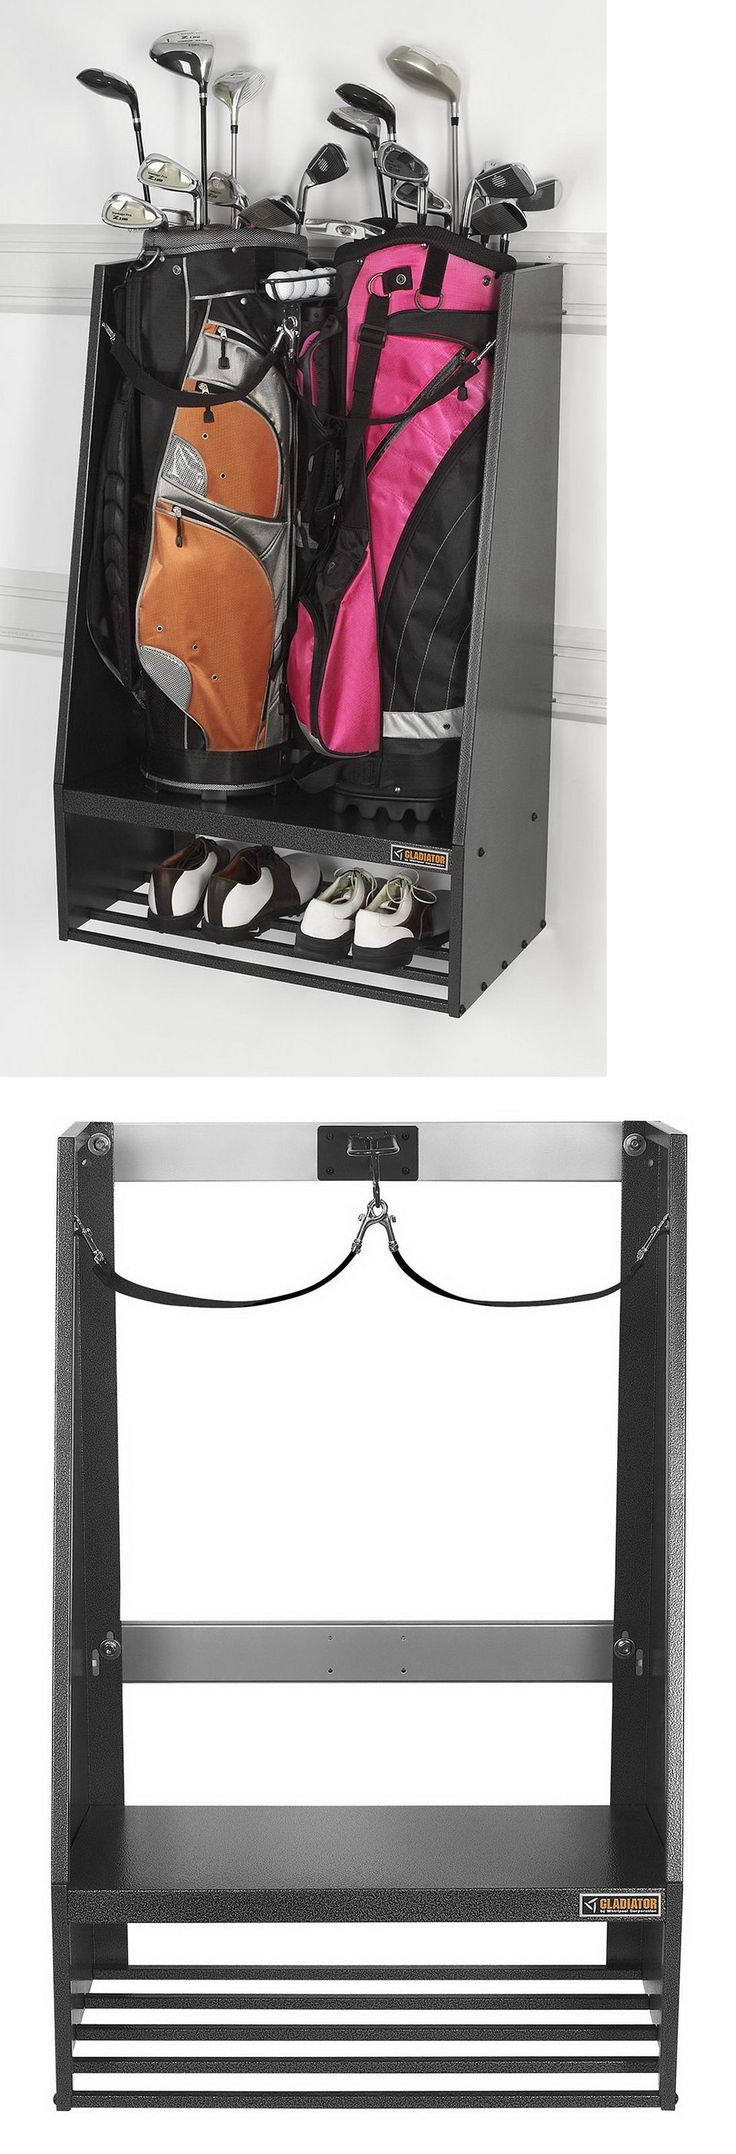 Other Golf Accessories 1514: New 2 Golf Bag Storage Rack Stand And Equipment Holder Organizer BUY IT NOW ONLY: $116.69